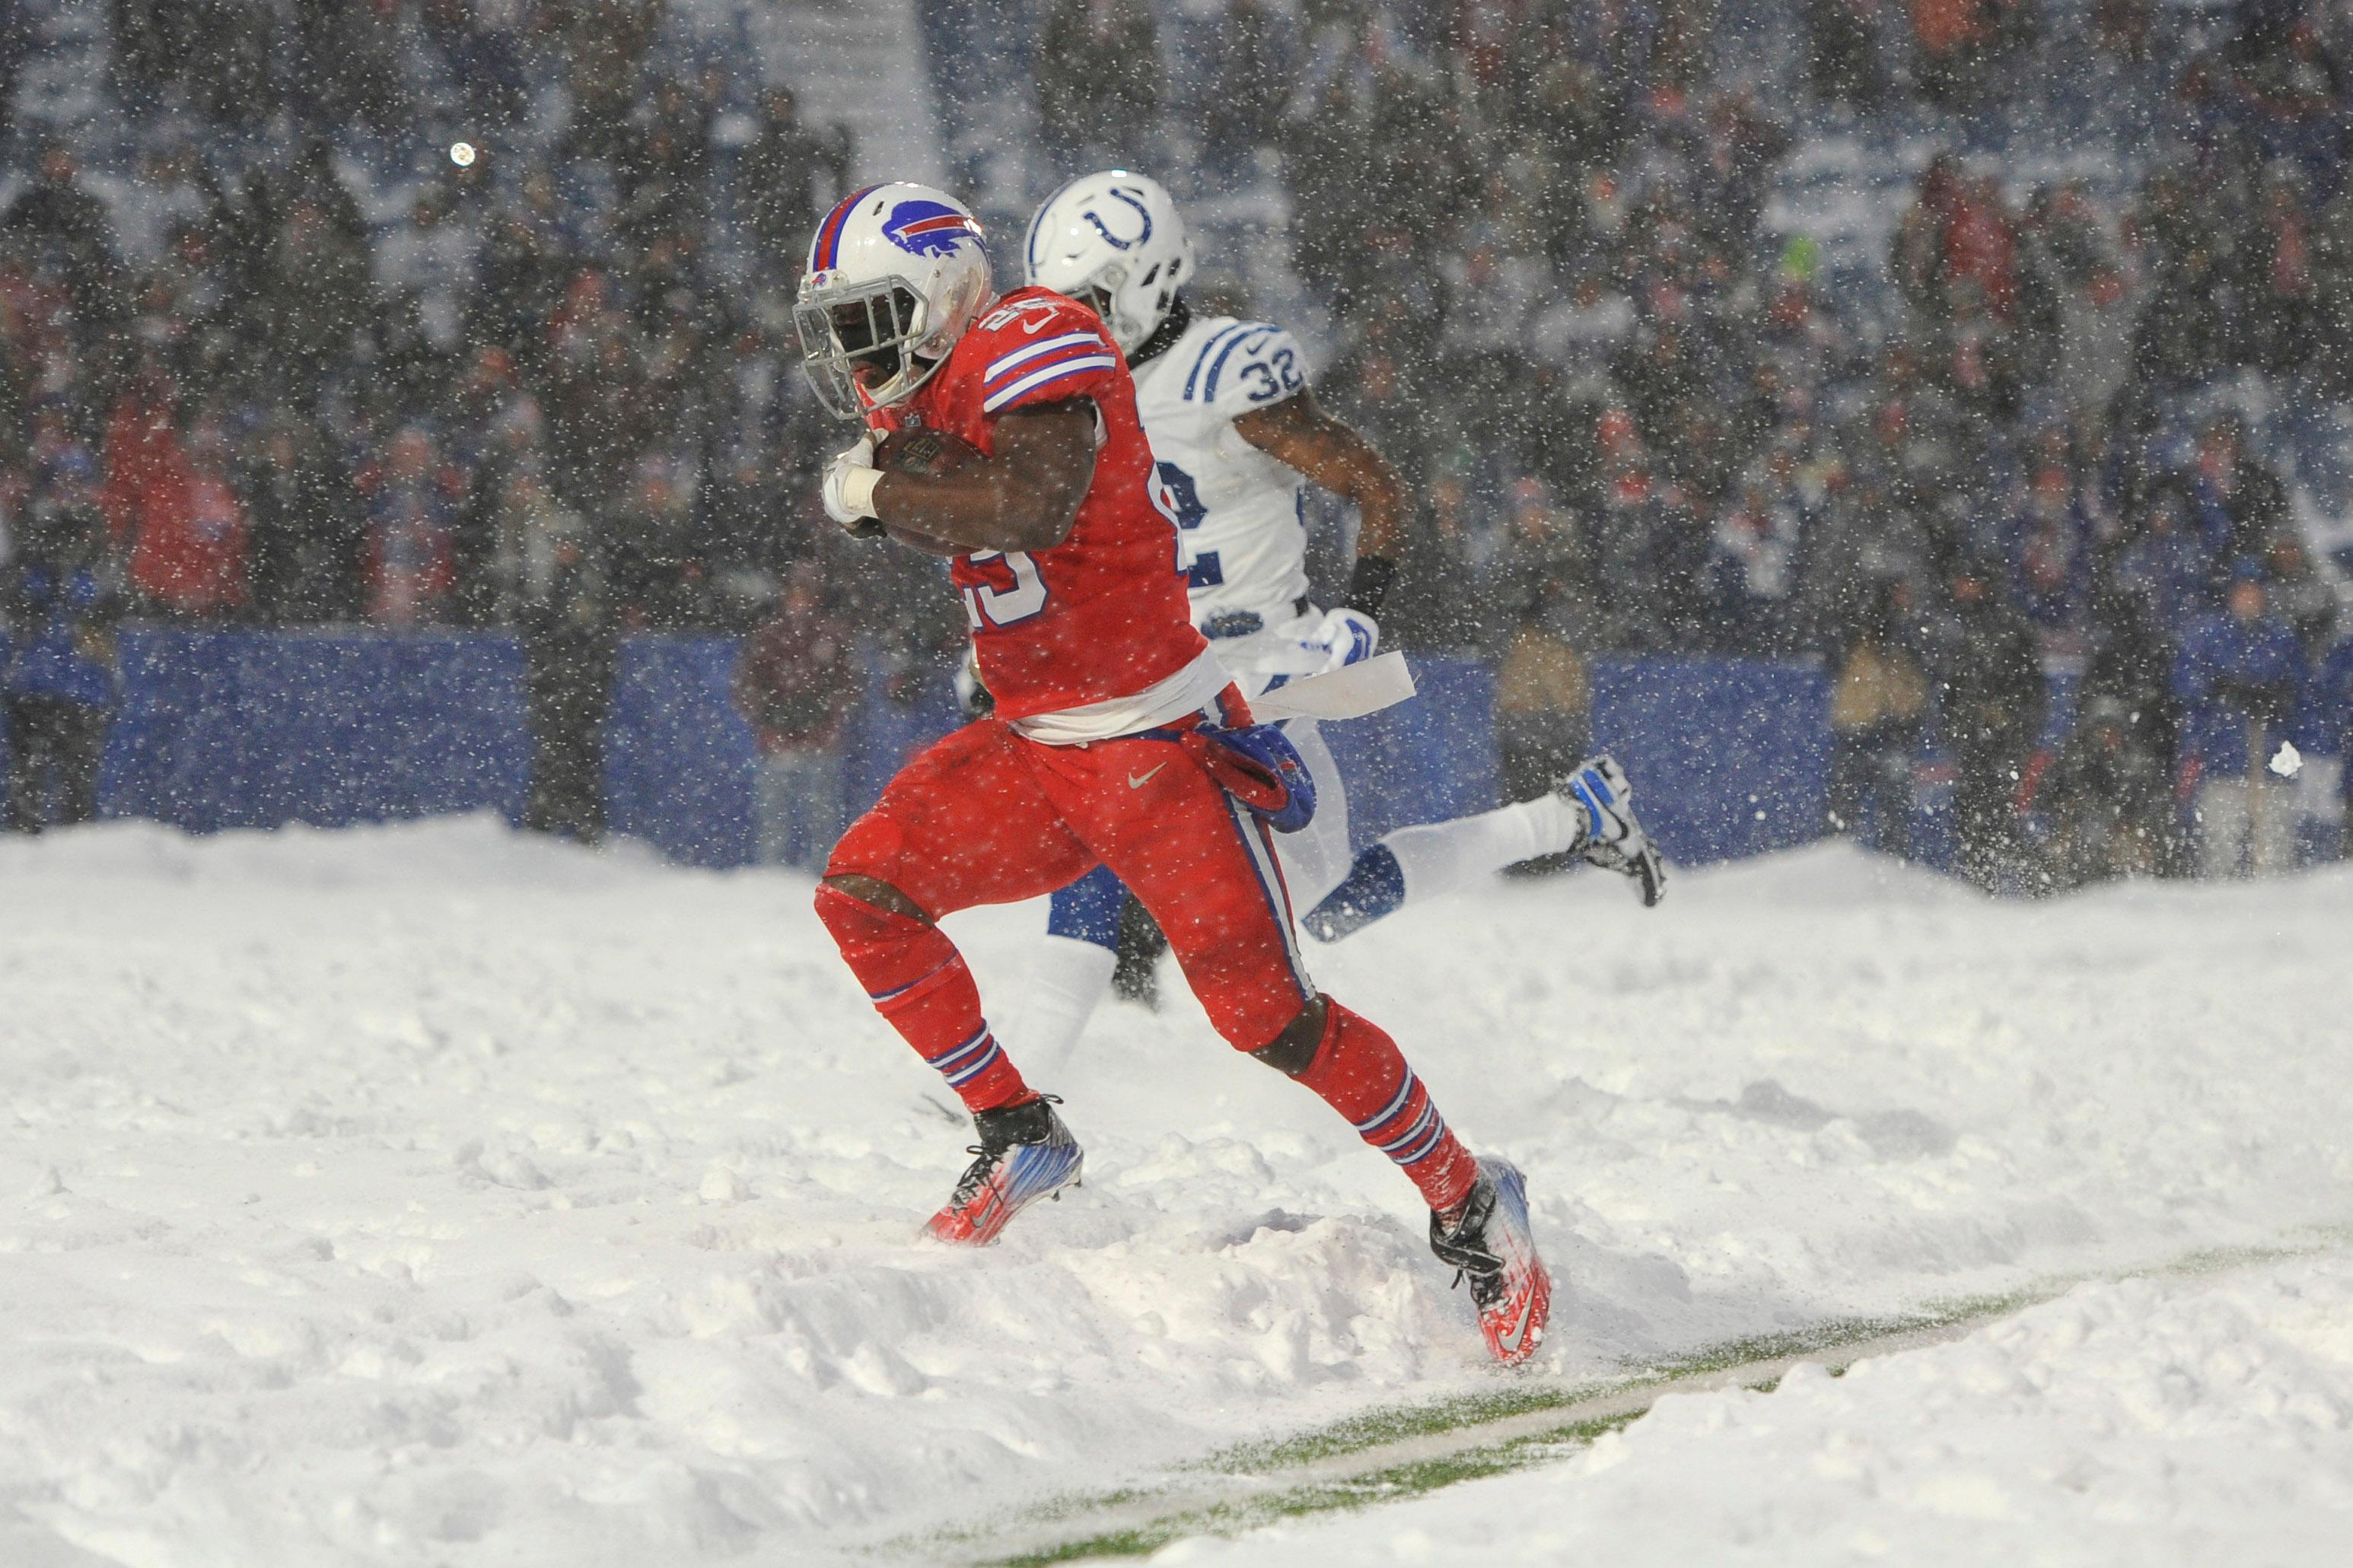 Bills beat Colts in blizzard bowl